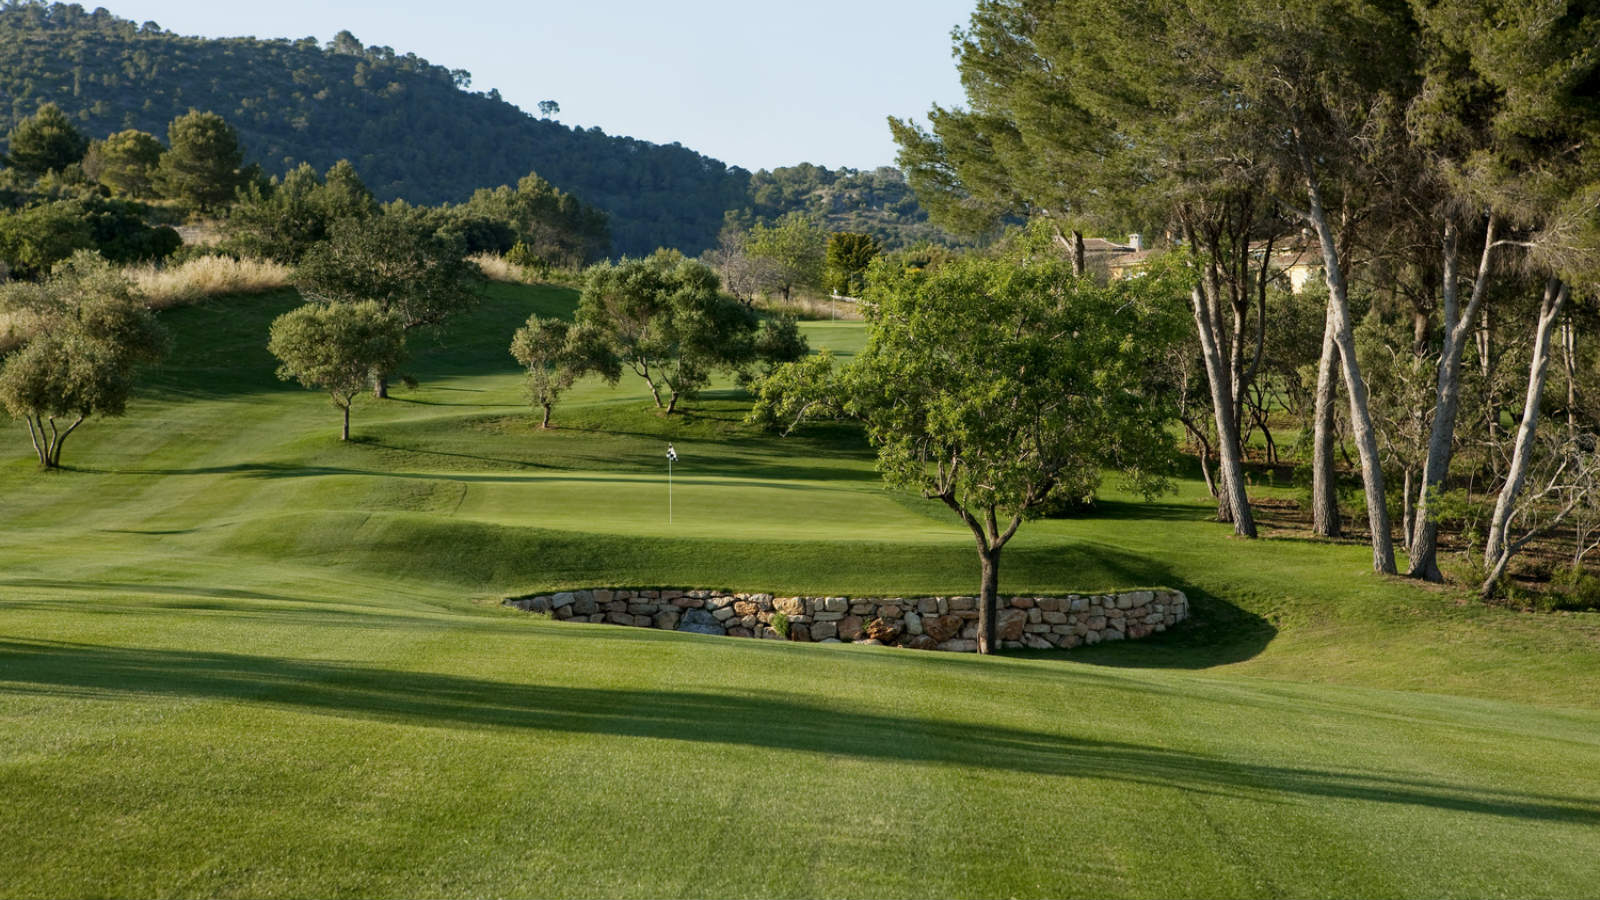 Son Quint Pitch & Putt golf course at The St. Regis Mardavall Mallorca